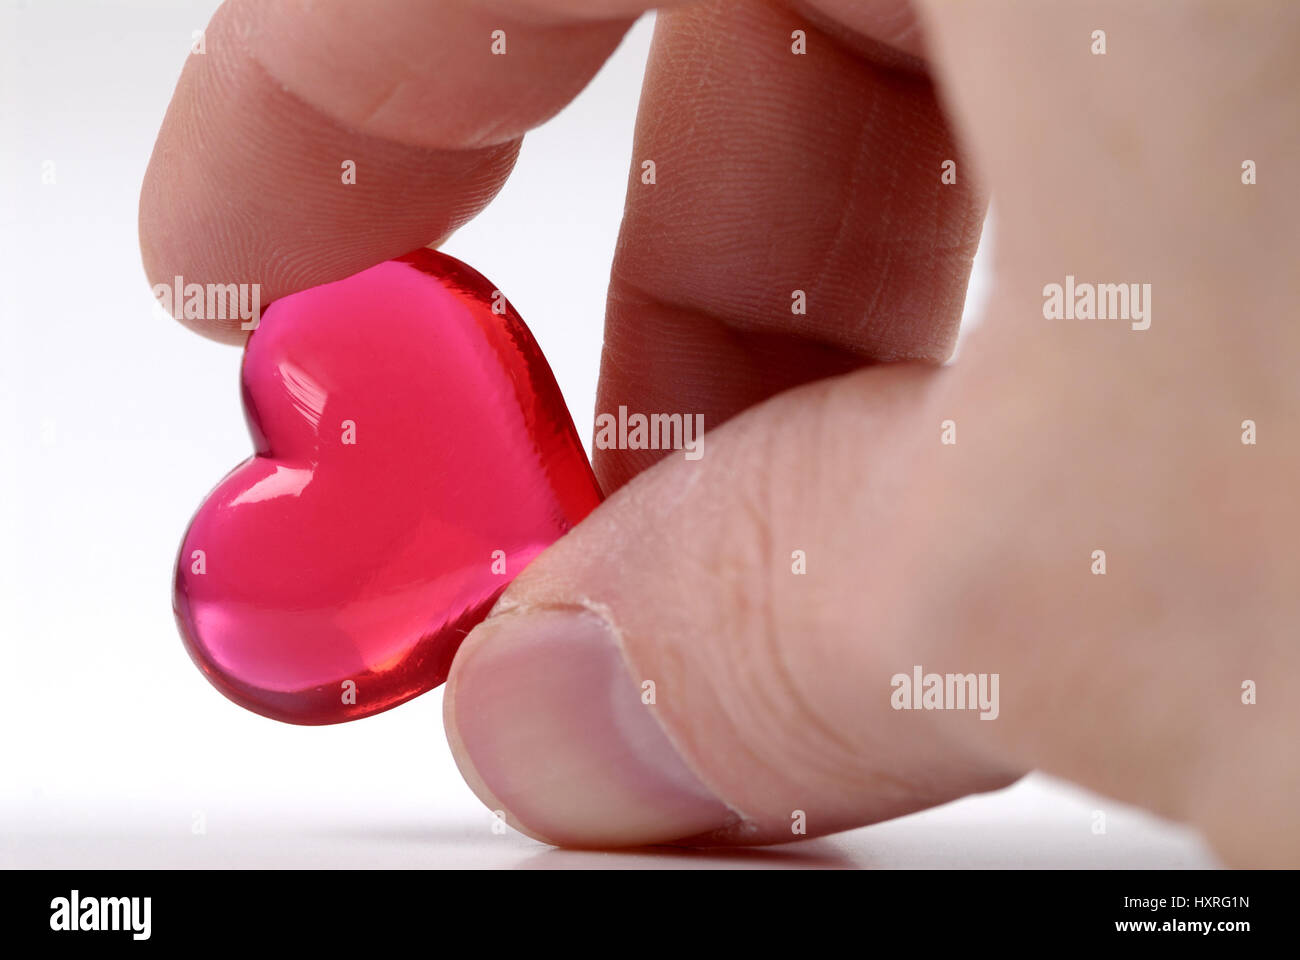 Heart, hearts, red, red, red, love, partnership, partnerships, feeling, feelings, love, there fall in love, hand, - Stock Image